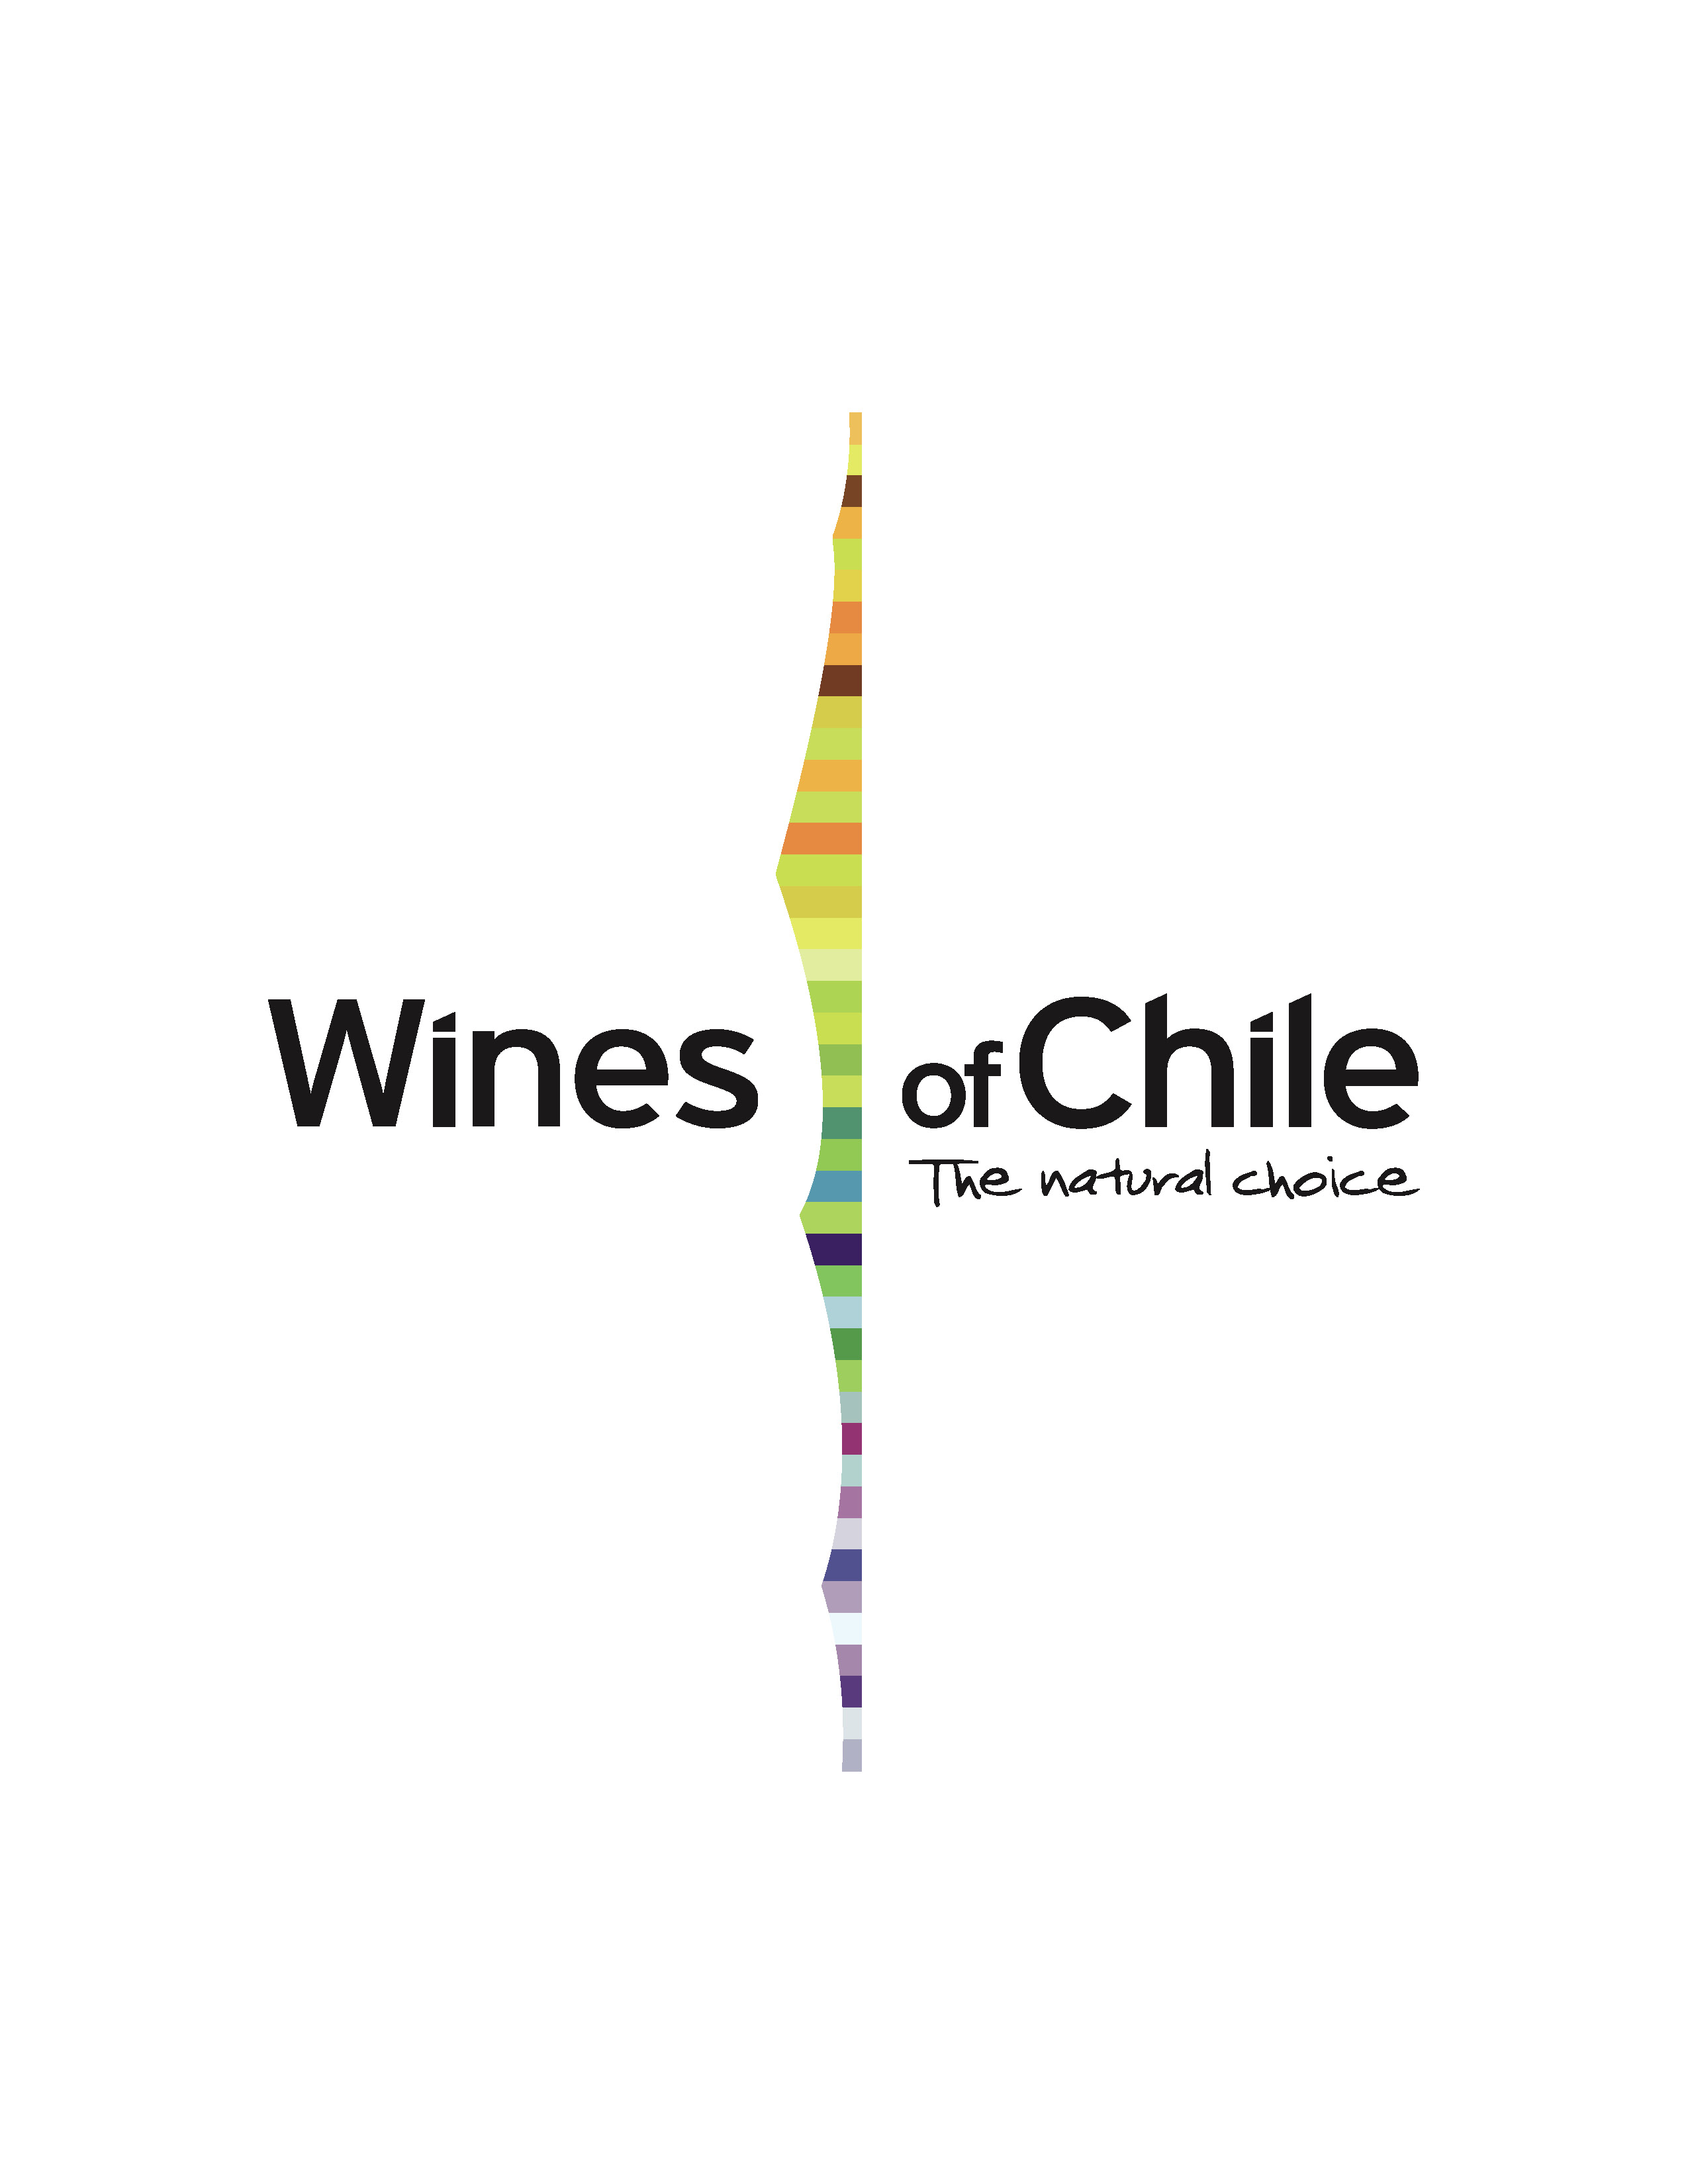 Wines of Chile USA